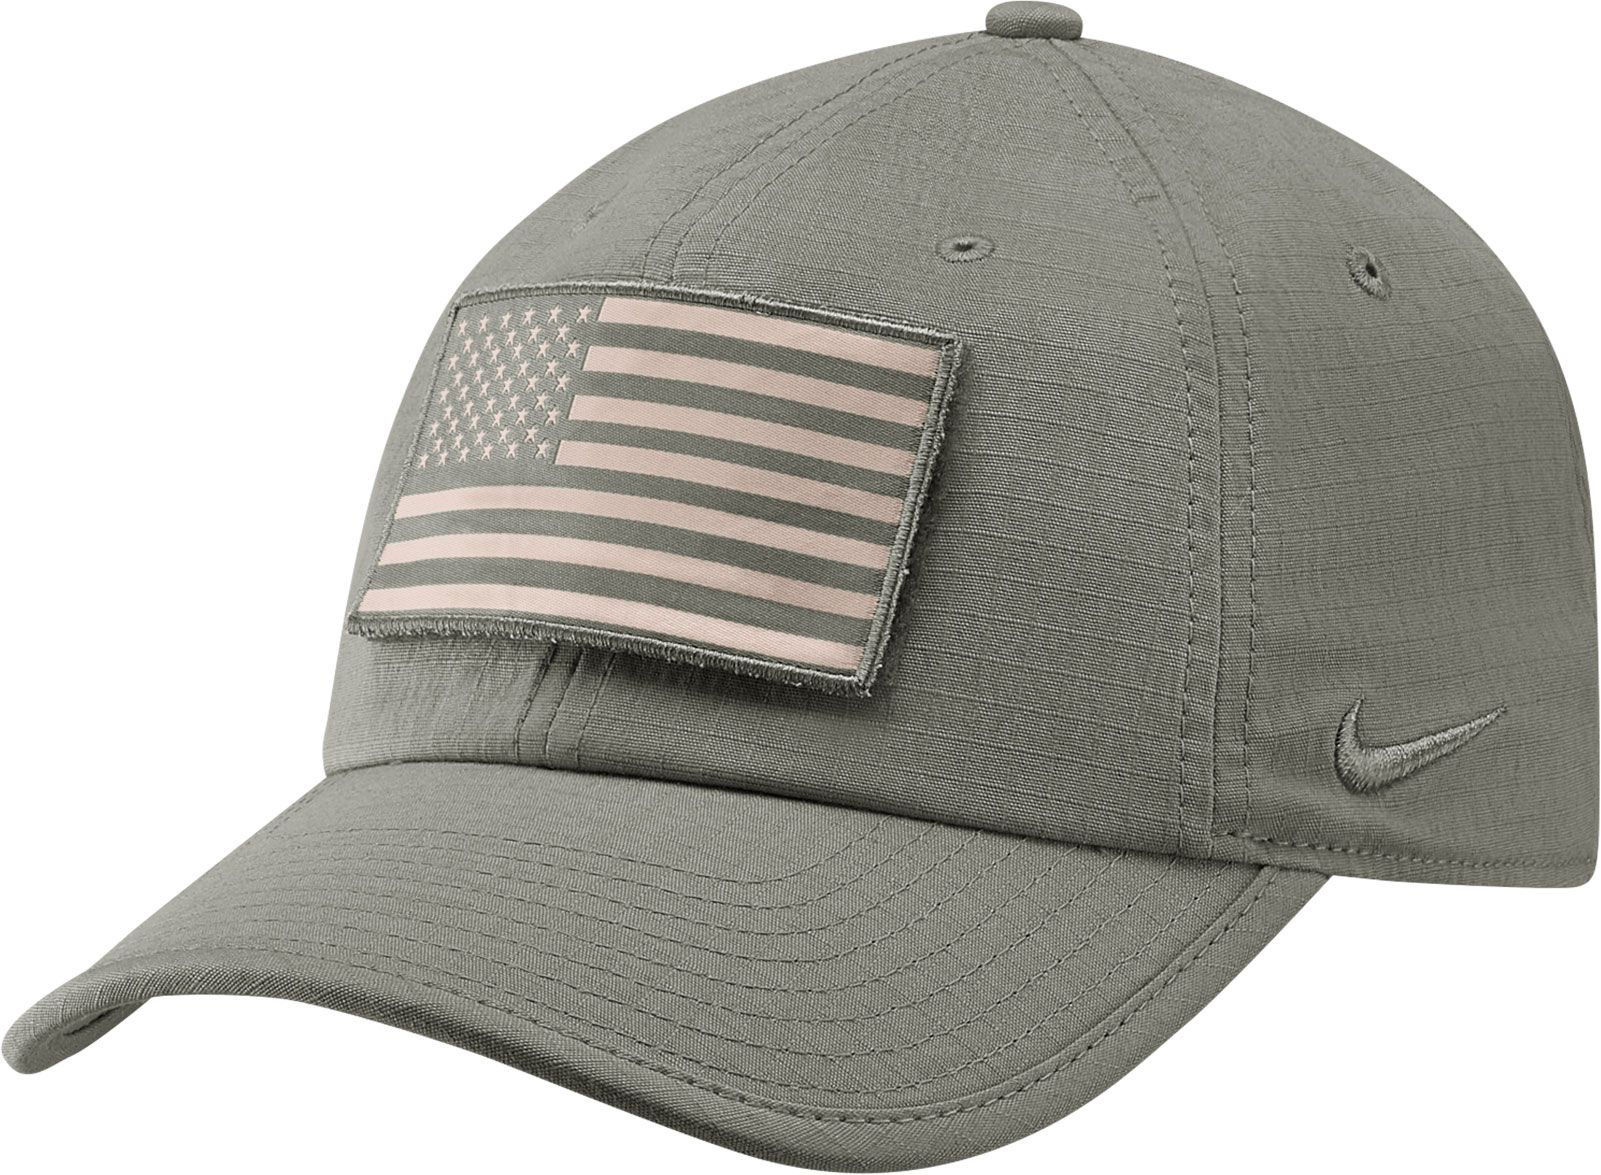 5a0a181c2d8e5 ... australia nike mens arizona wildcats grey heritage86 tactical  adjustable hat 109d1 f0f87